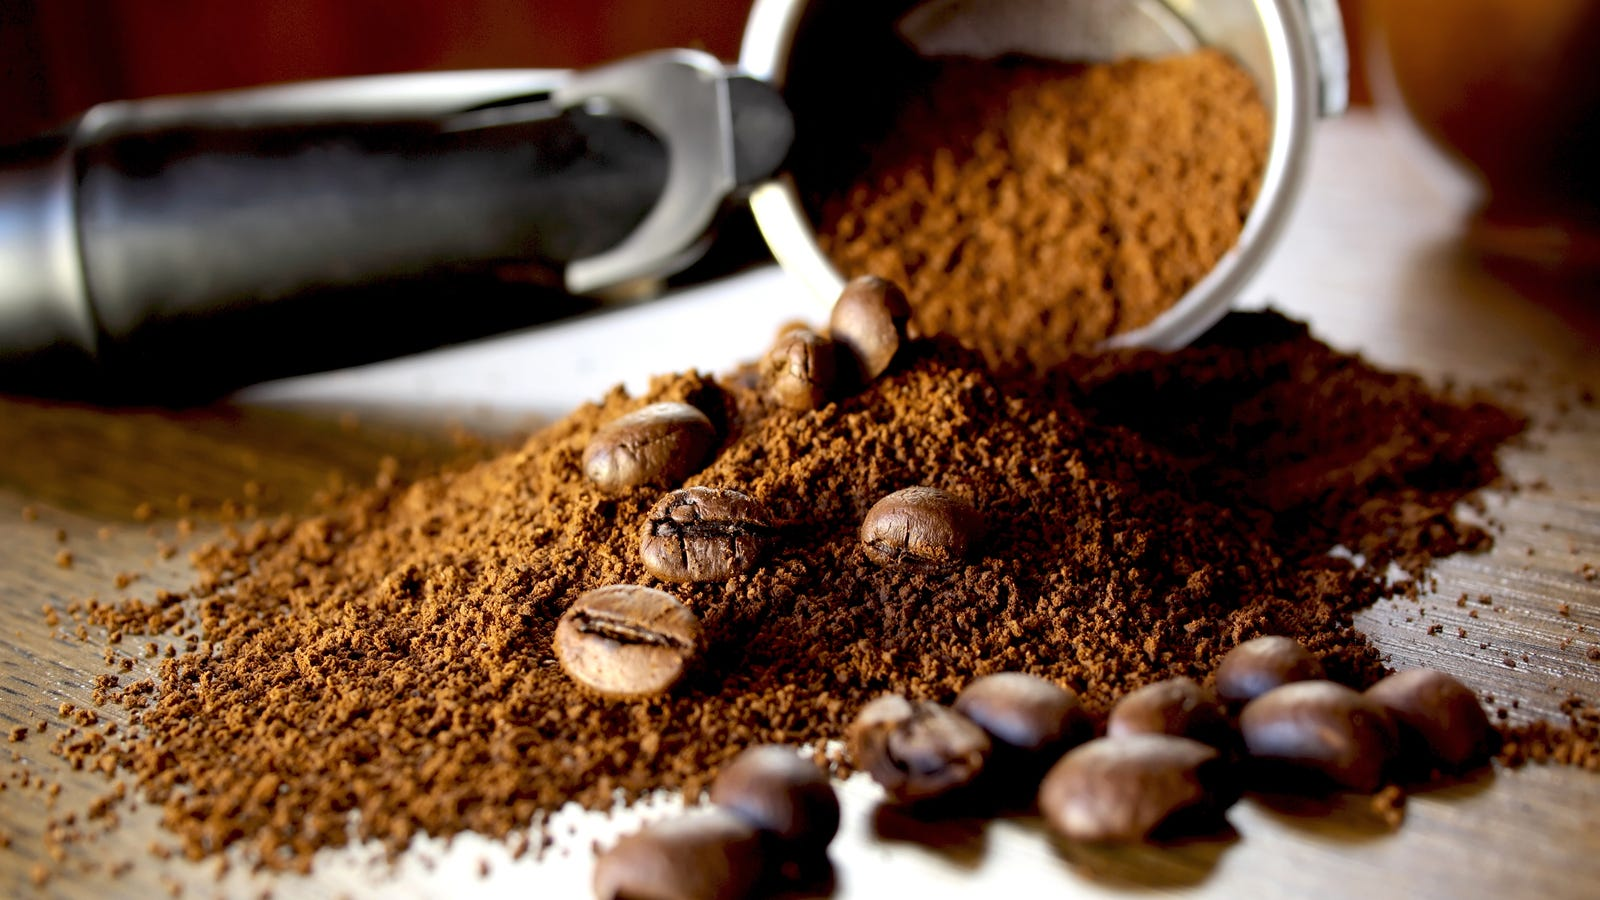 ground coffee with multple coffee beans mixed in.